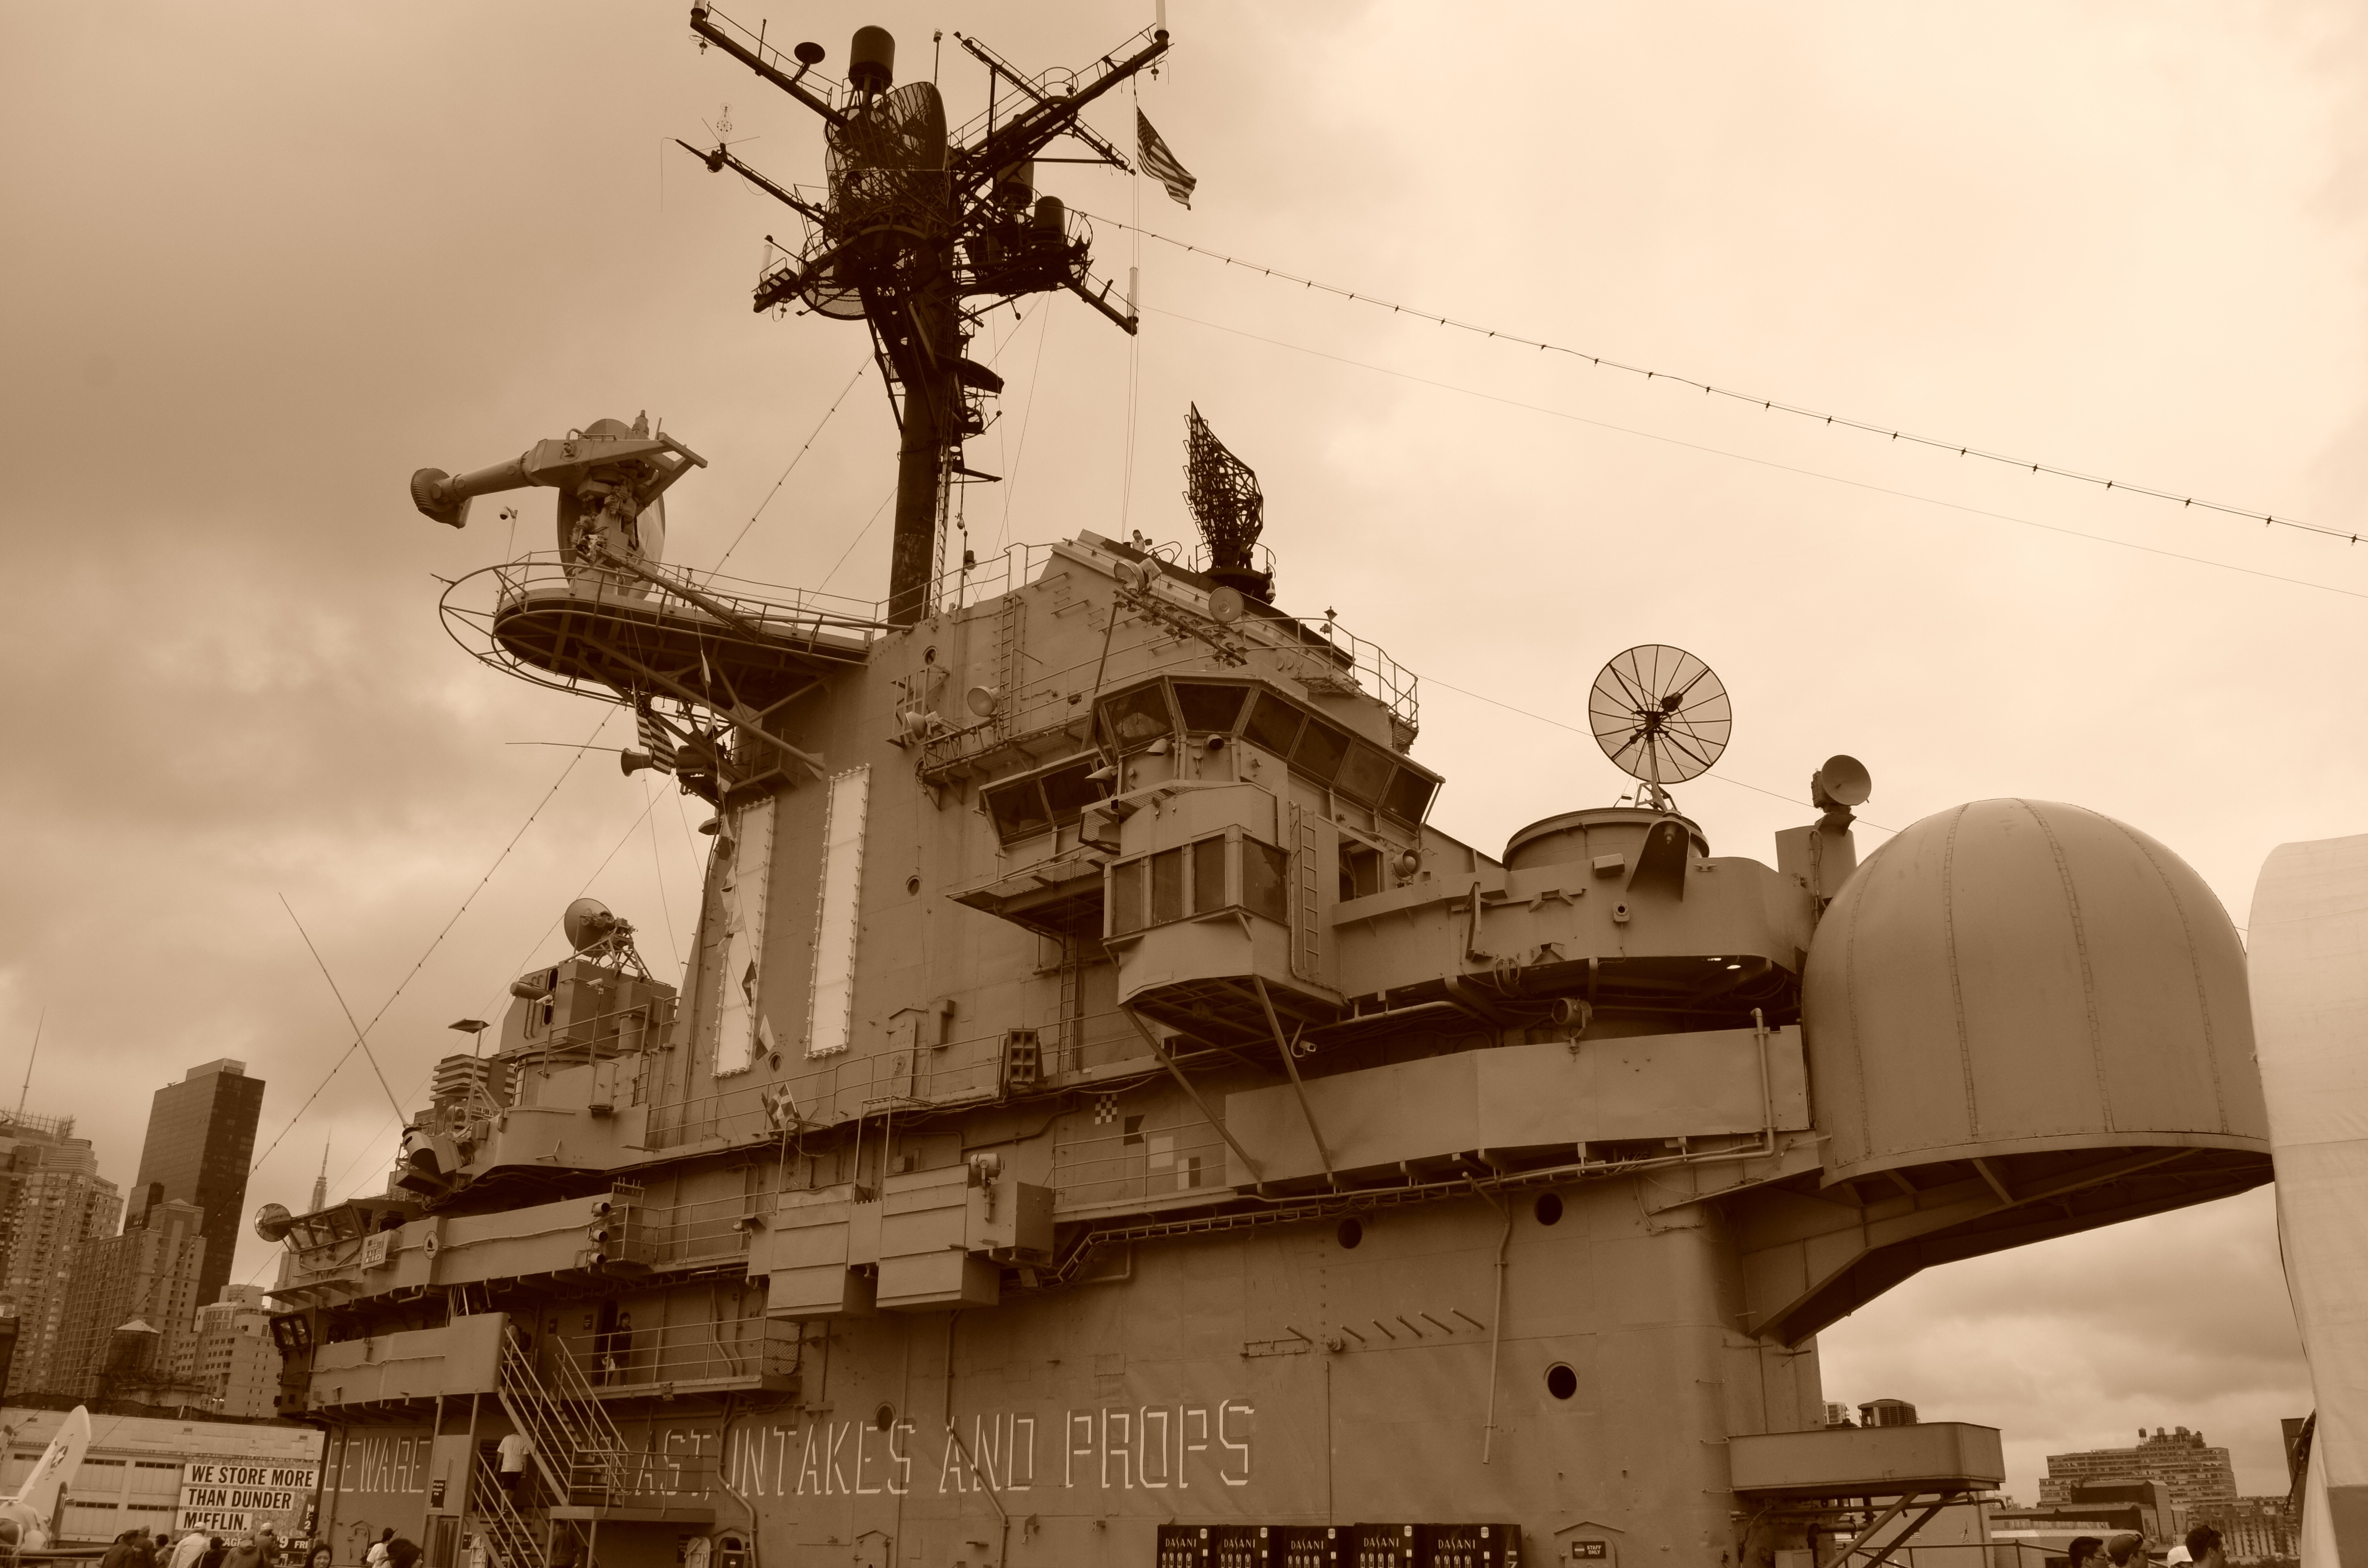 brown intakes and props ship image Peakpx 4928x3264